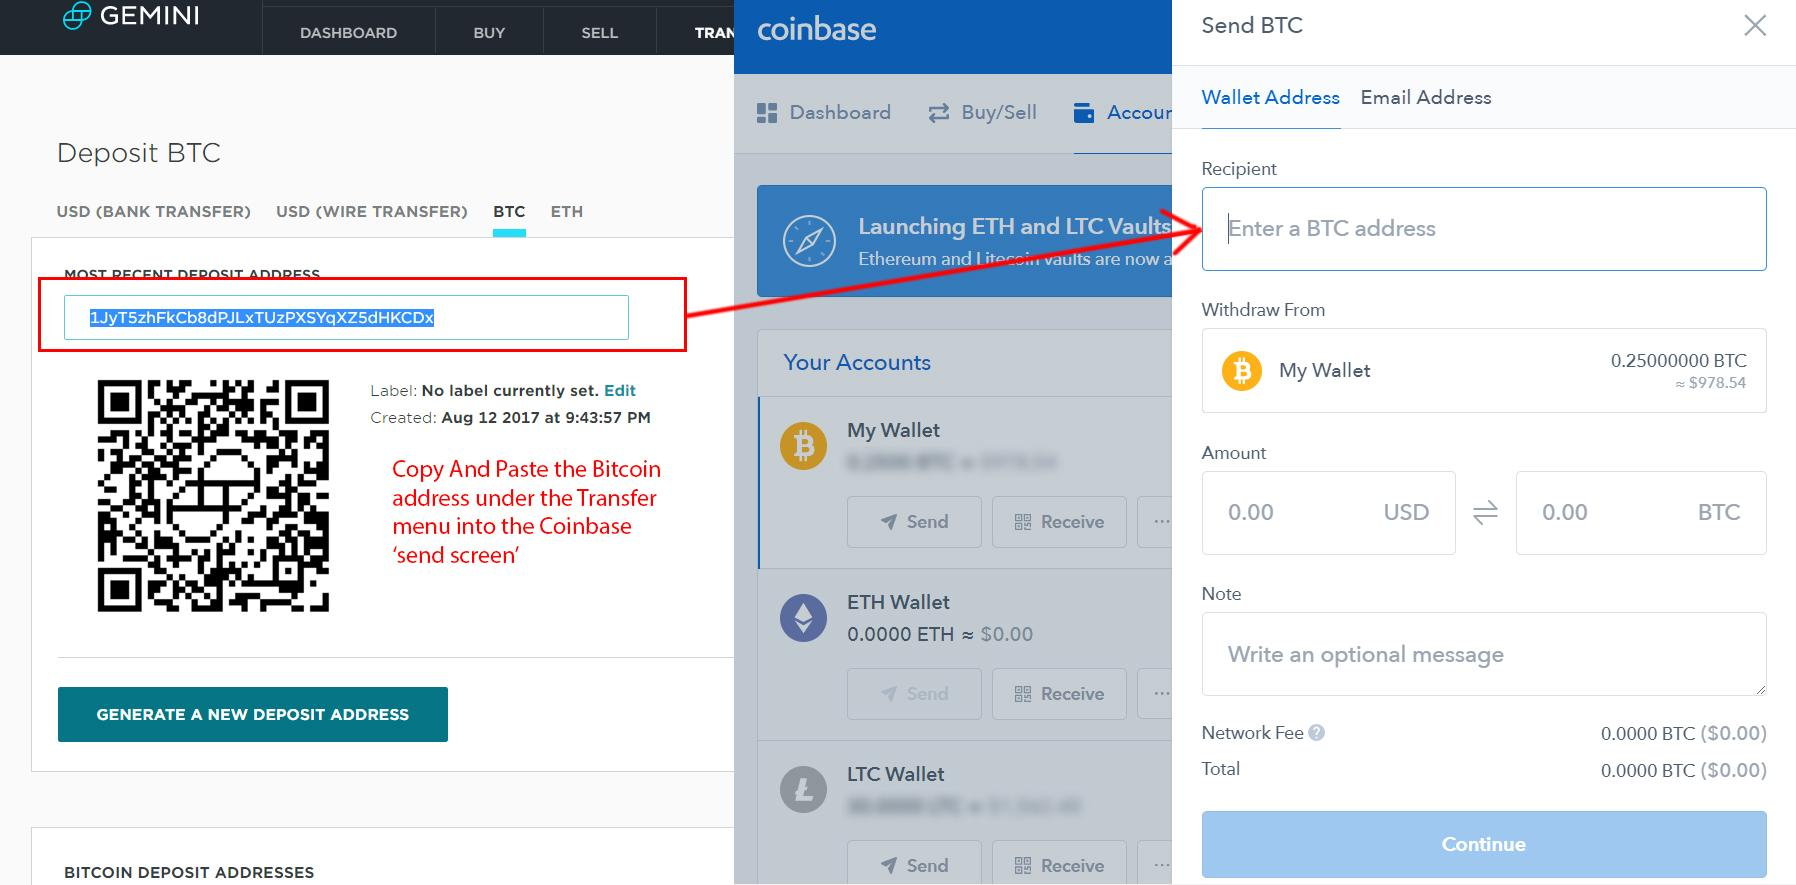 What Is The Website To Buuy Bitcoin That Coinbase Holds Ryan